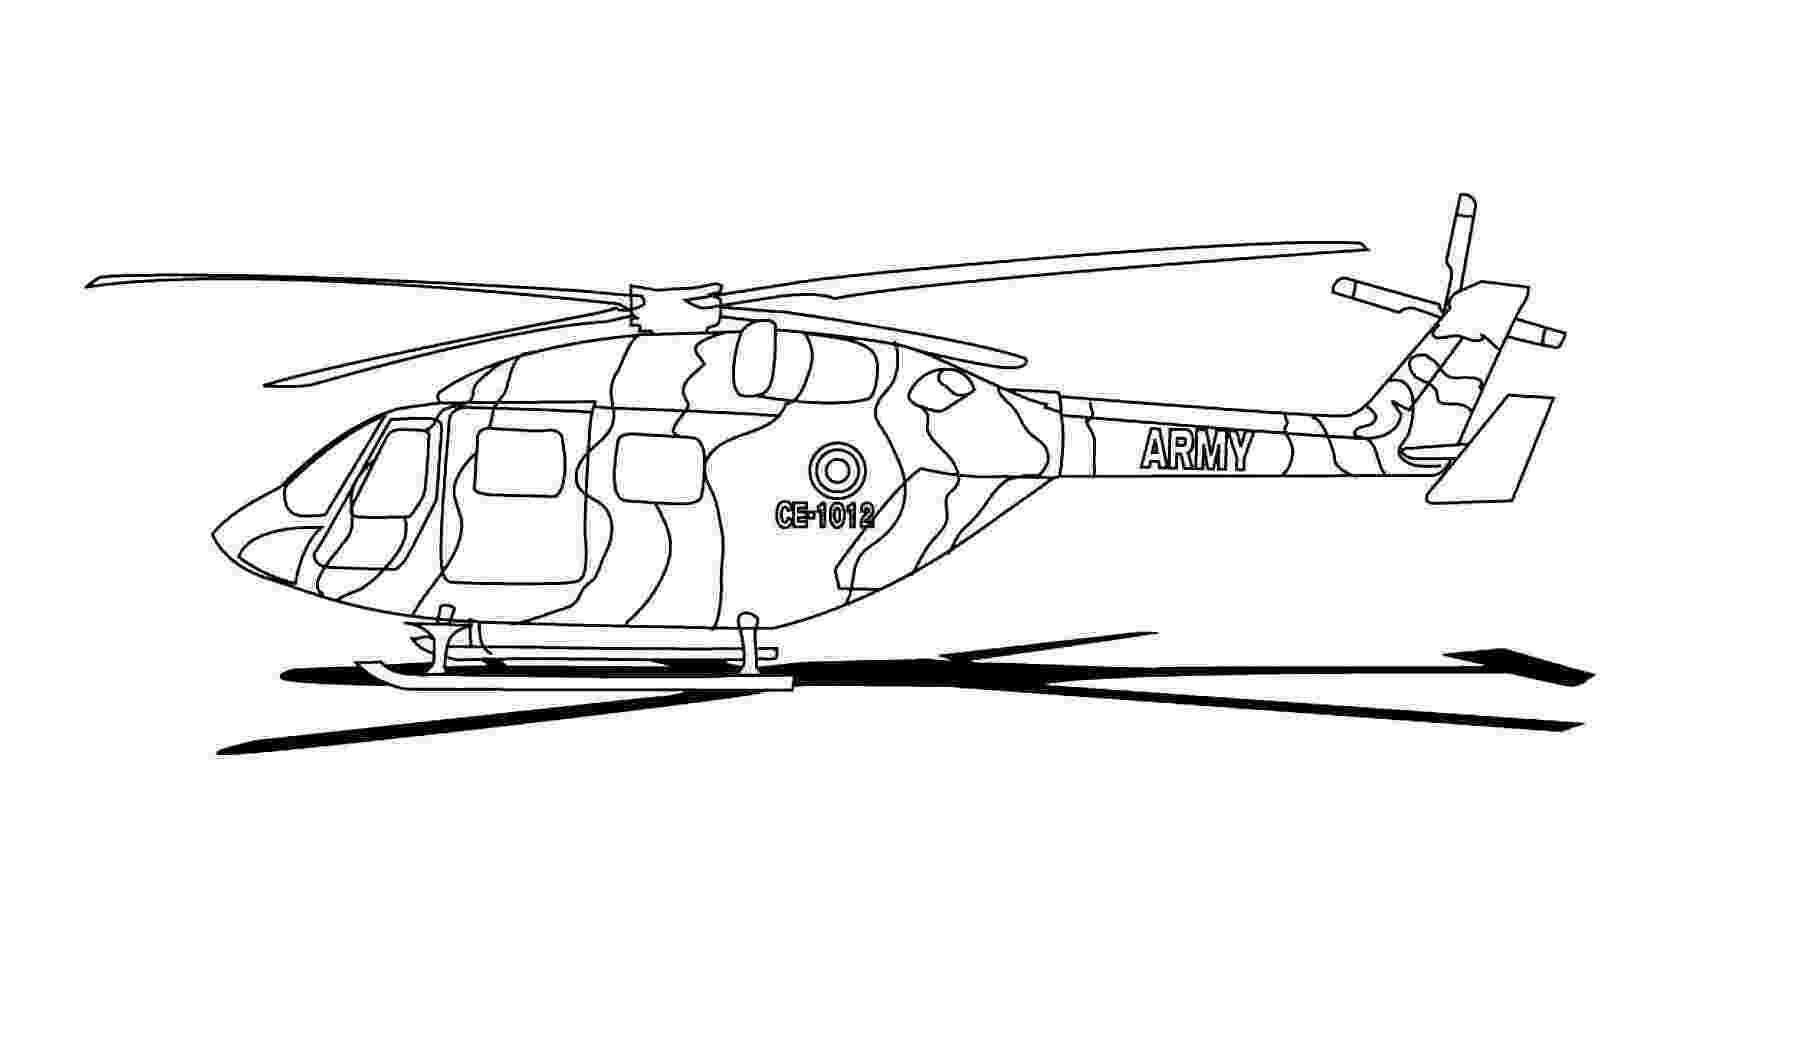 helicopter colouring free printable helicopter coloring pages for kids helicopter colouring 1 2